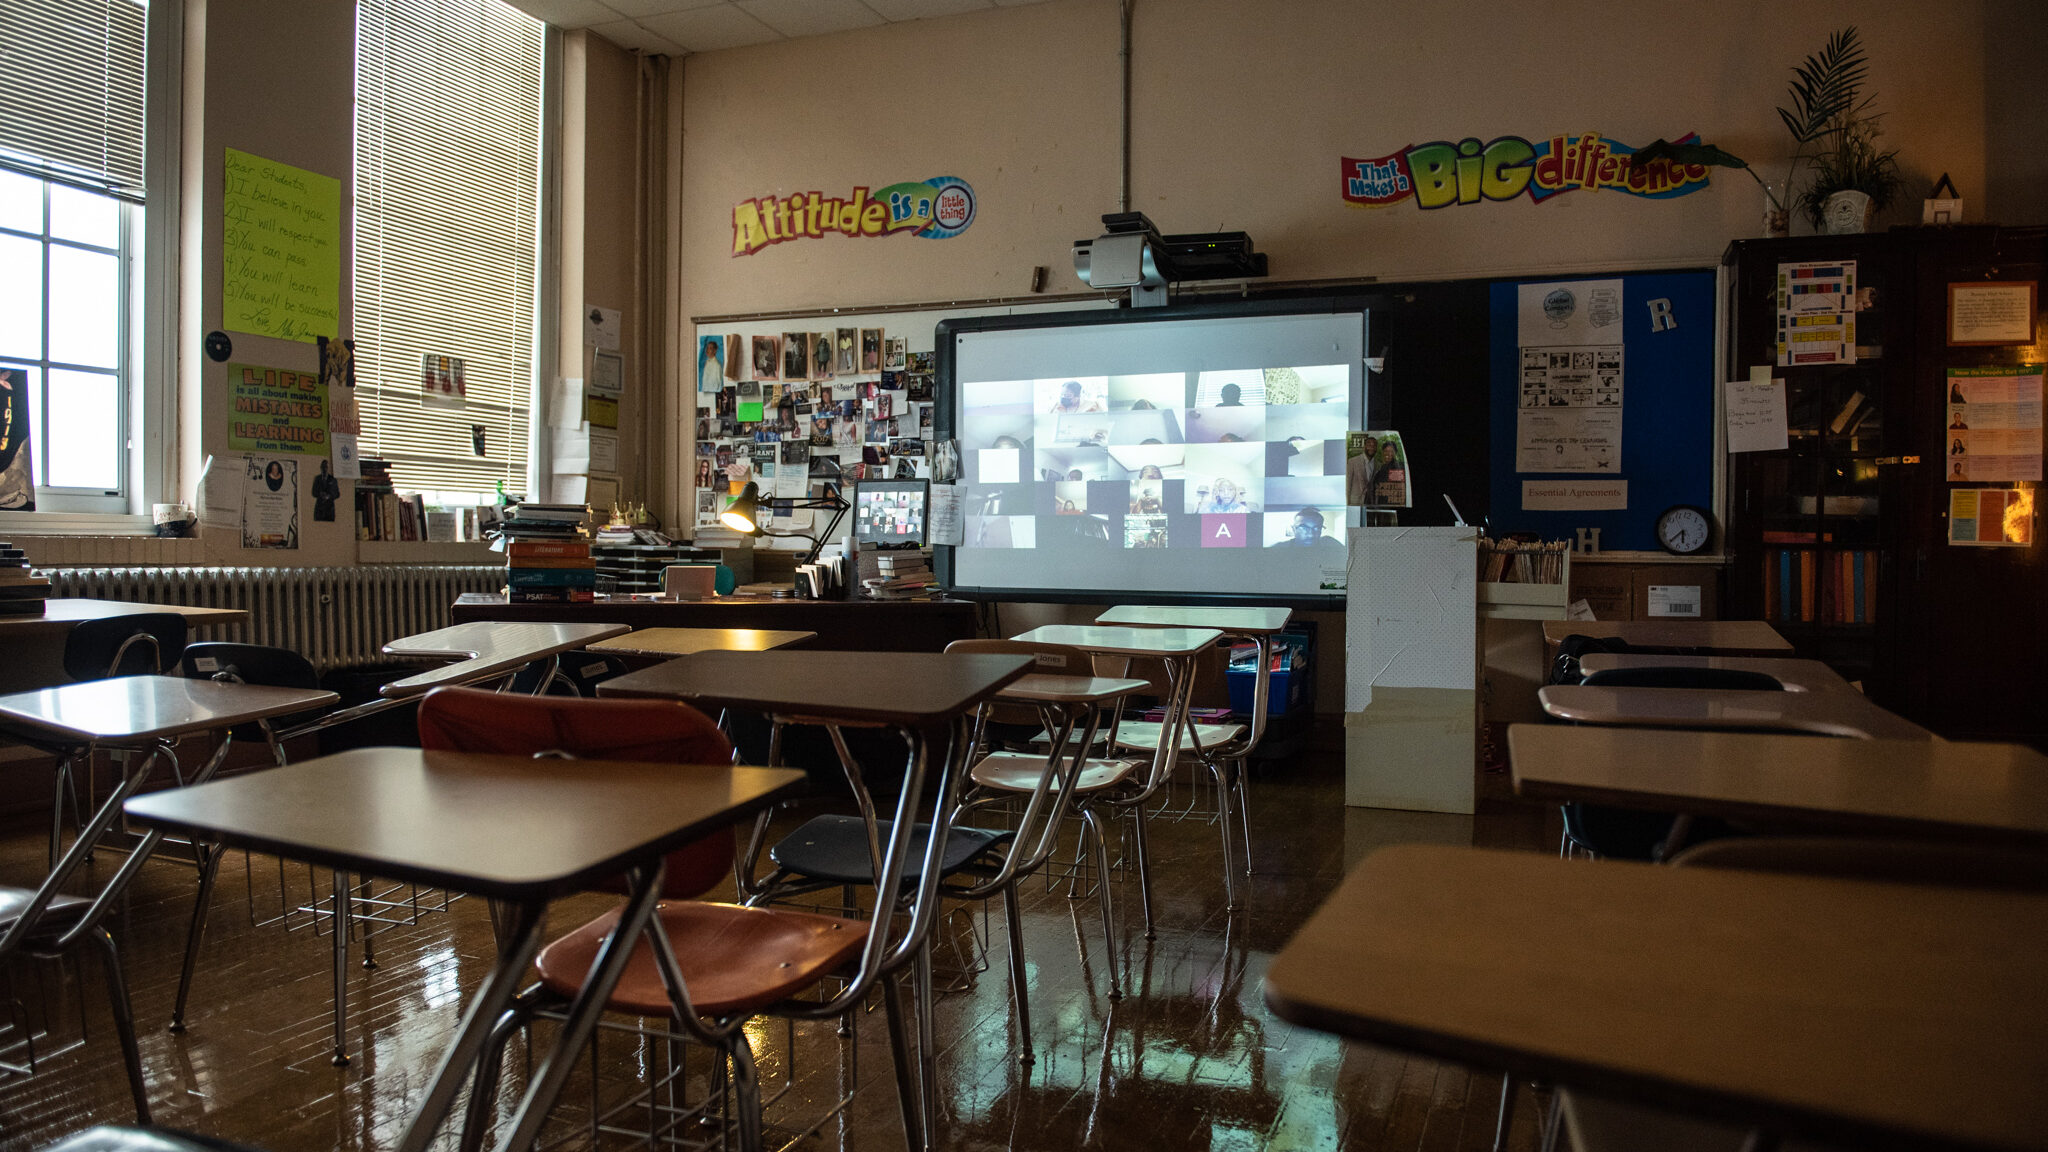 Erica Jones' English classroom was featured in the exhibit. It showed her last virtual class of the semester